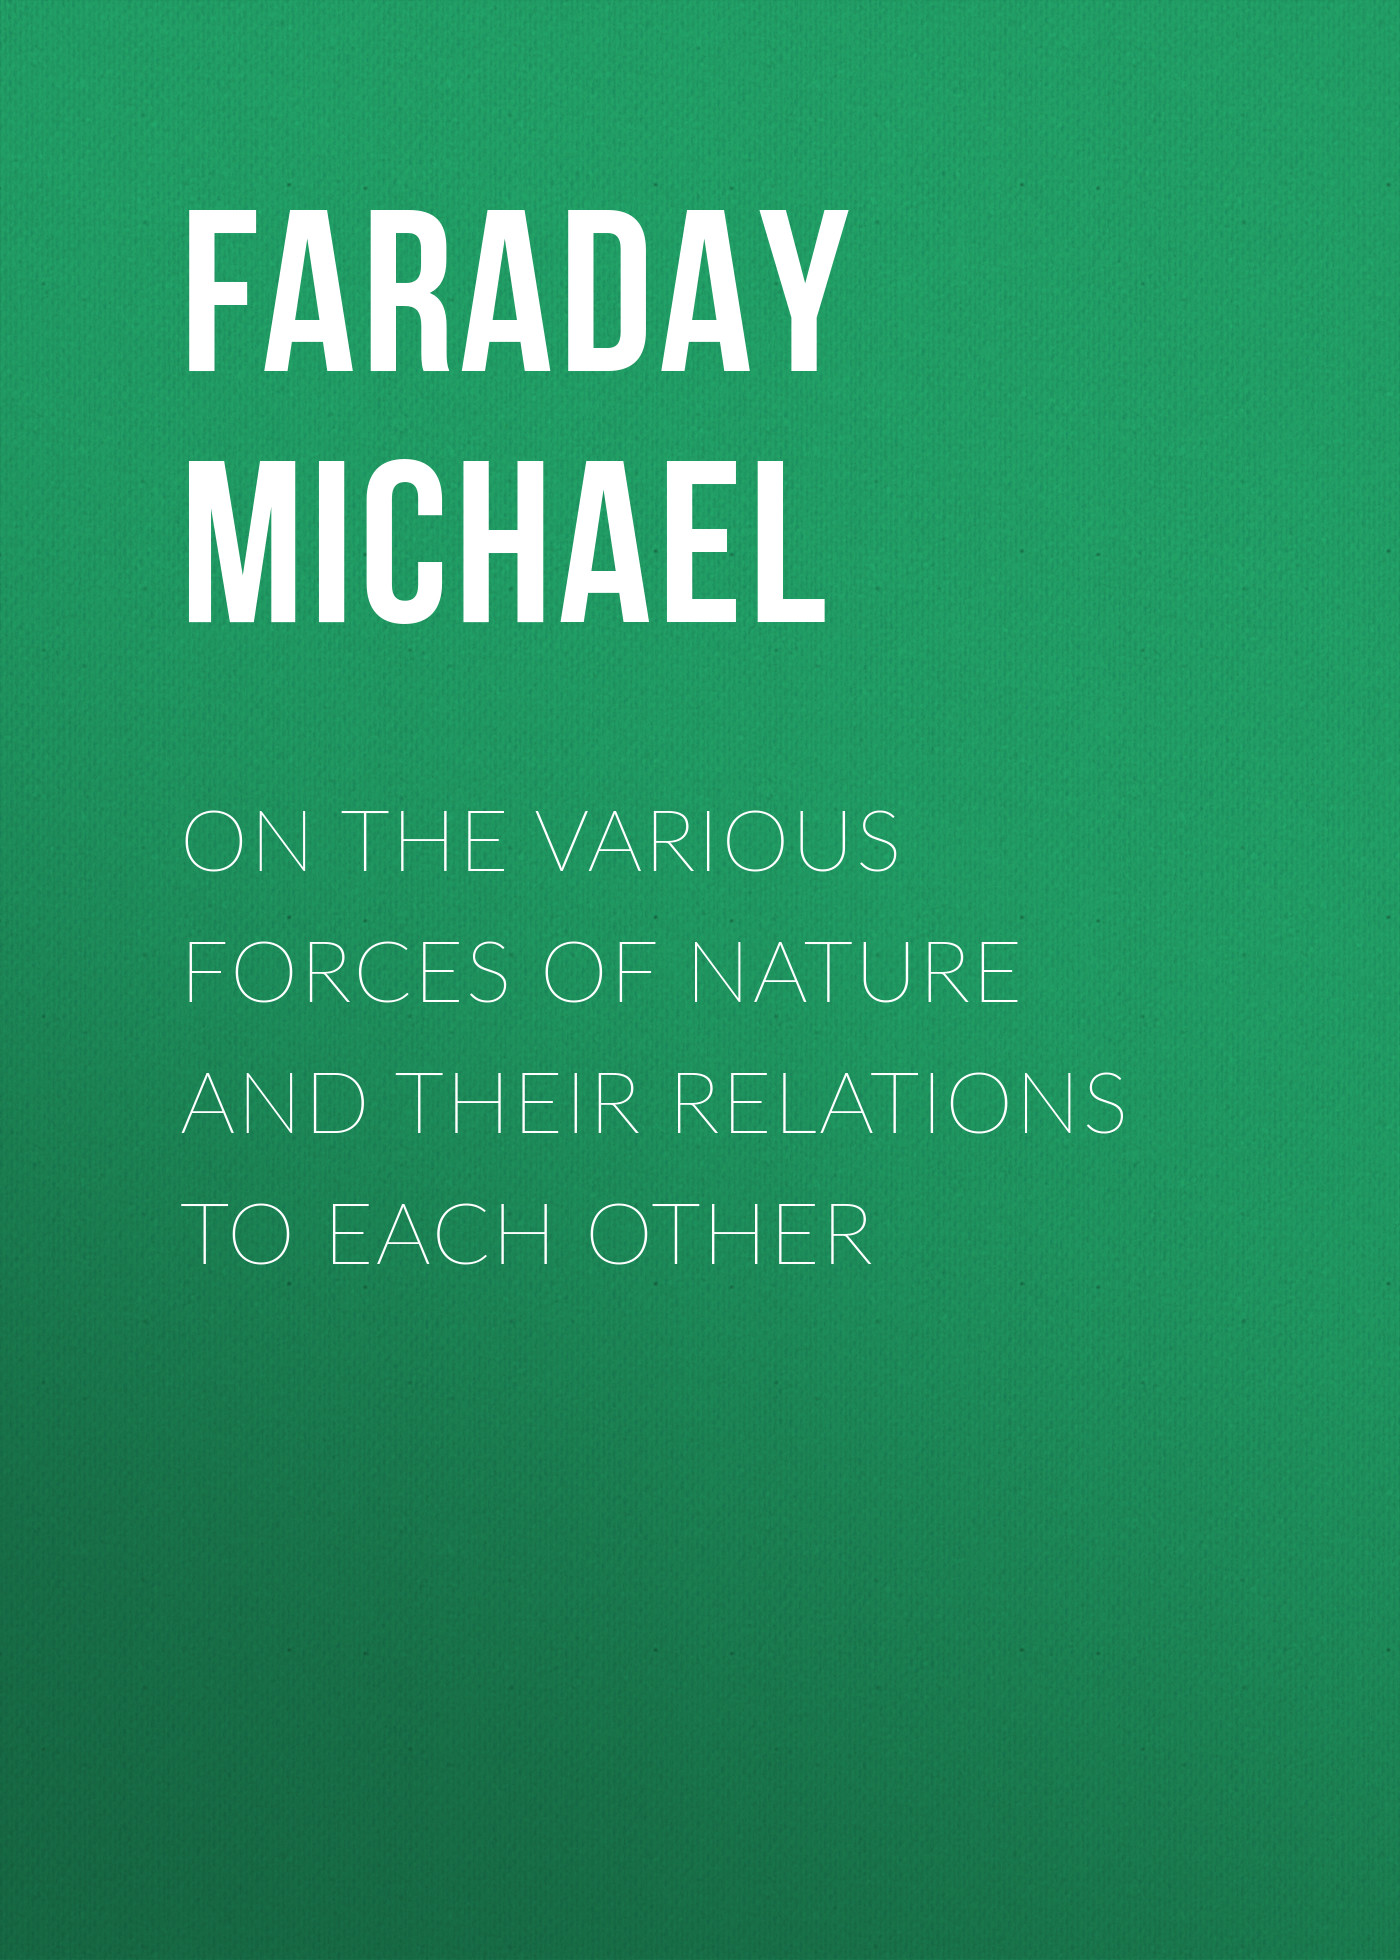 Faraday Michael On the various forces of nature and their relations to each other средство от комаров и или клещей детское picnic baby 125 мл